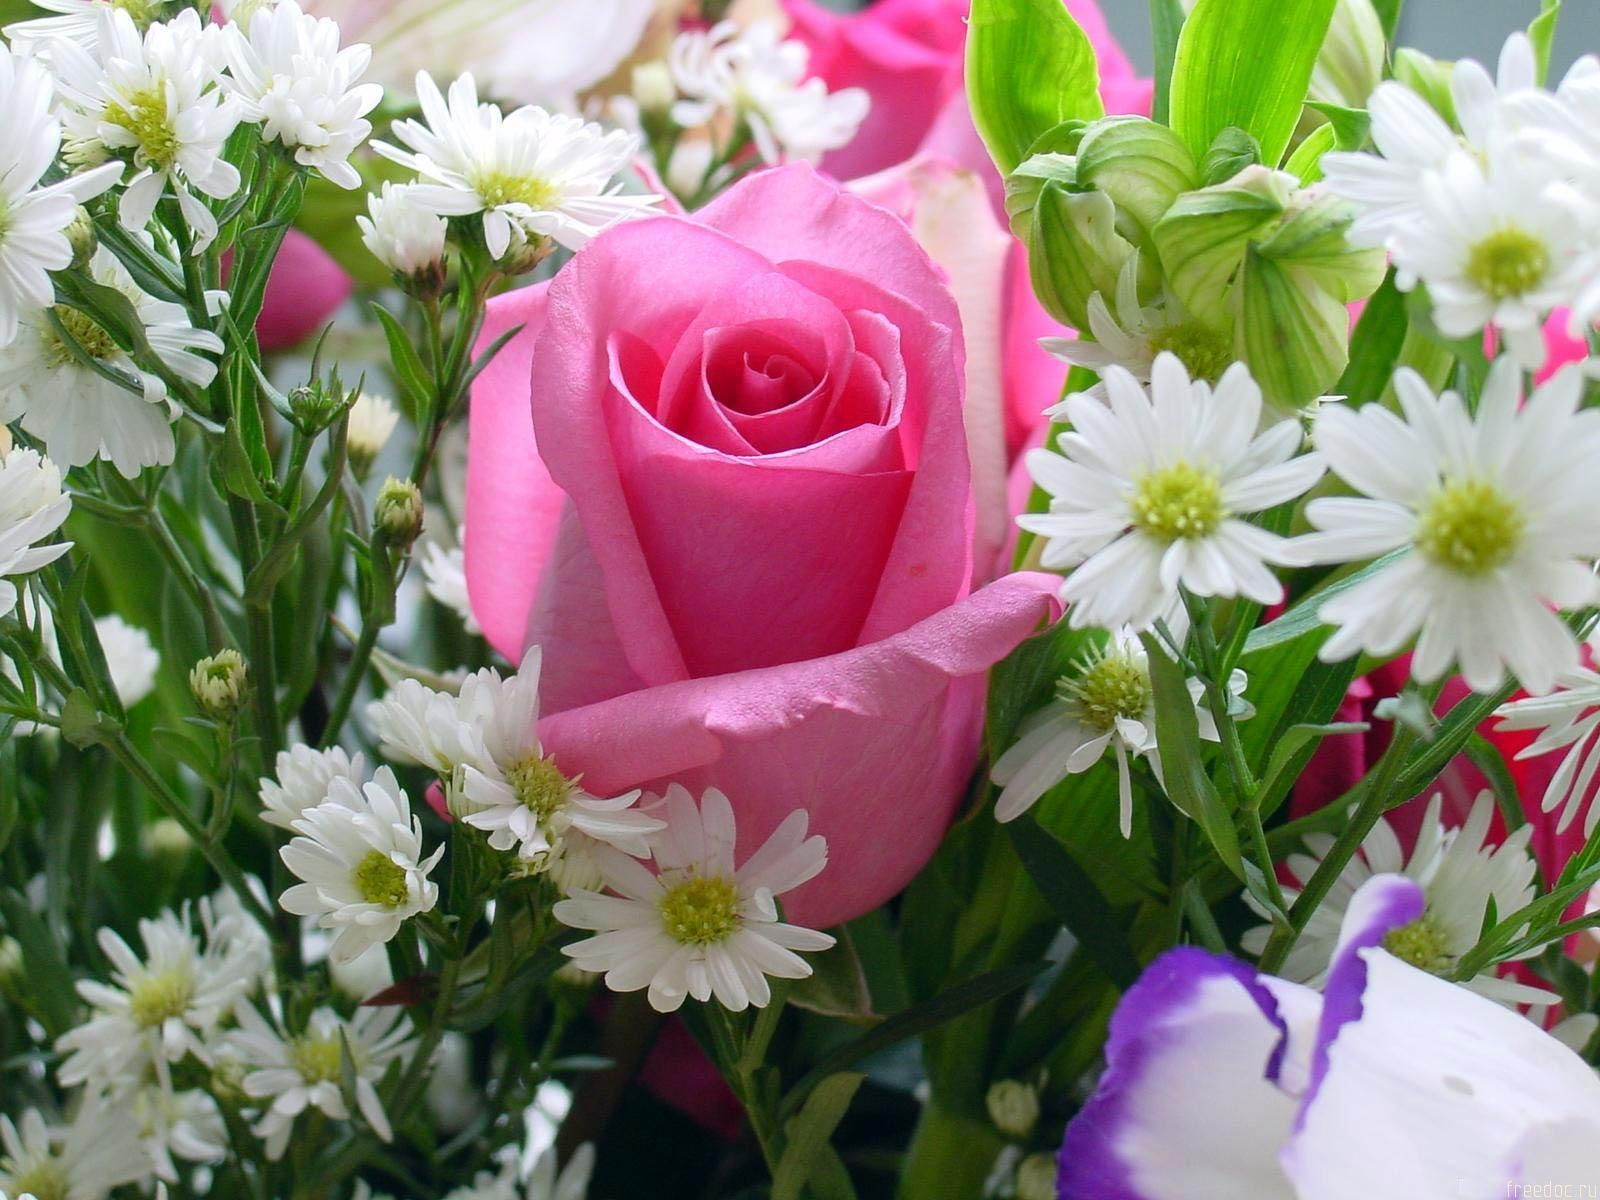 Find This Pin And More On Flowers A Single Pink Rose